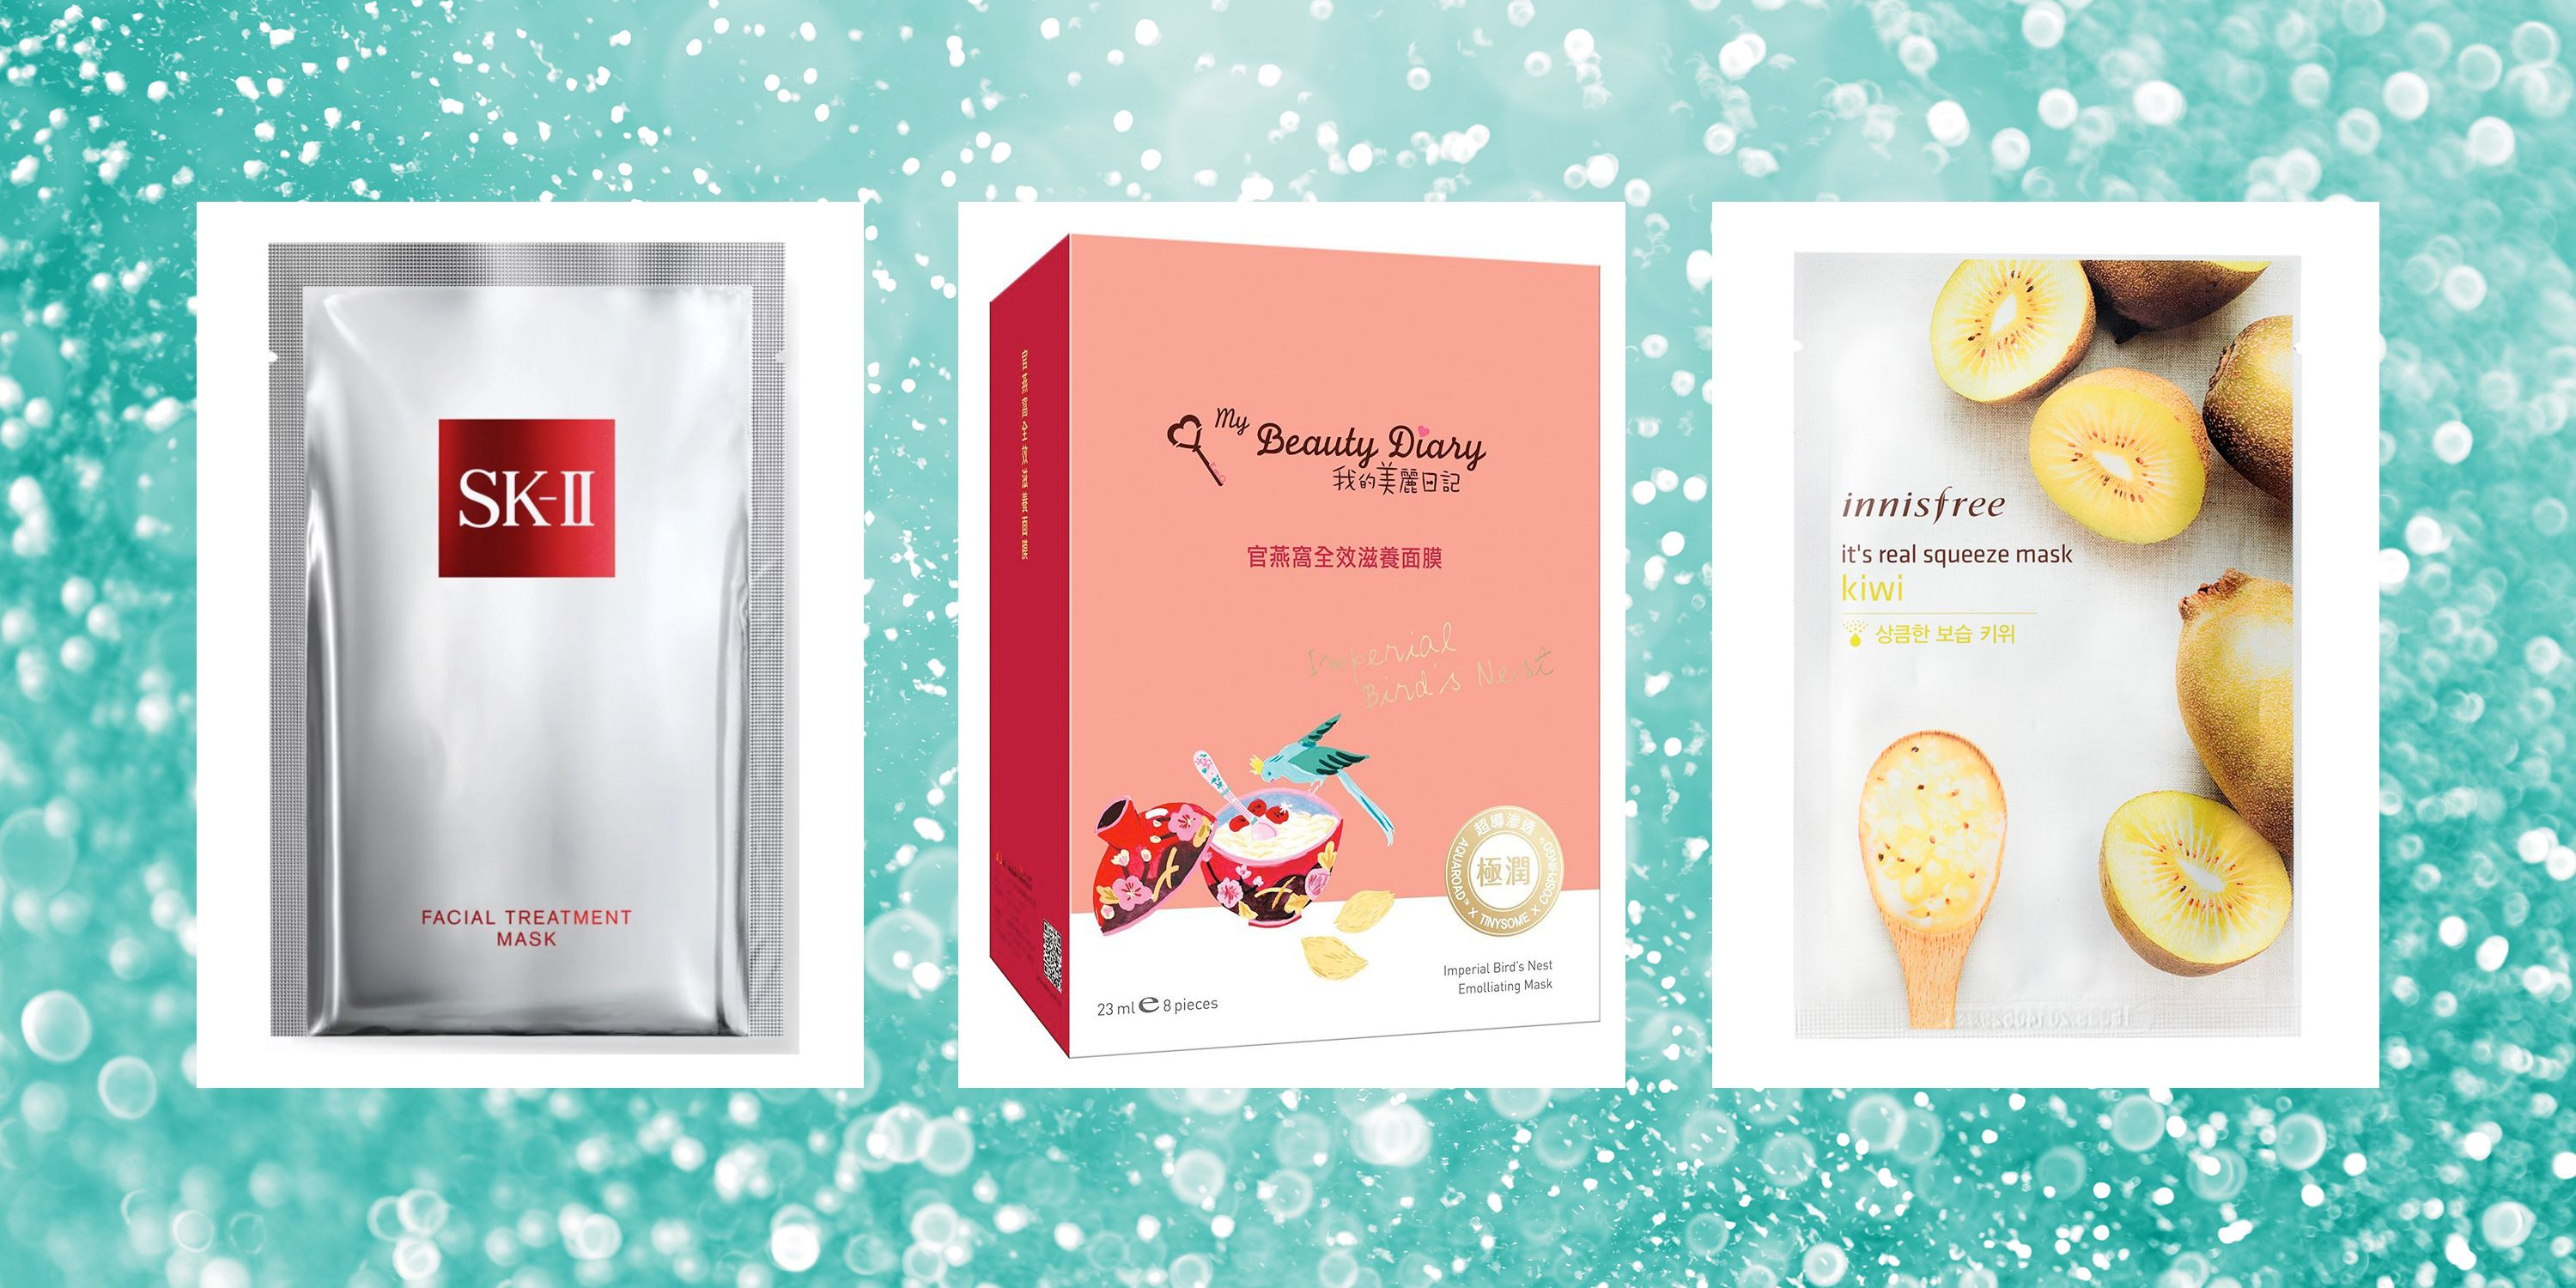 The 7 Best Sheet Masks According To Reddit